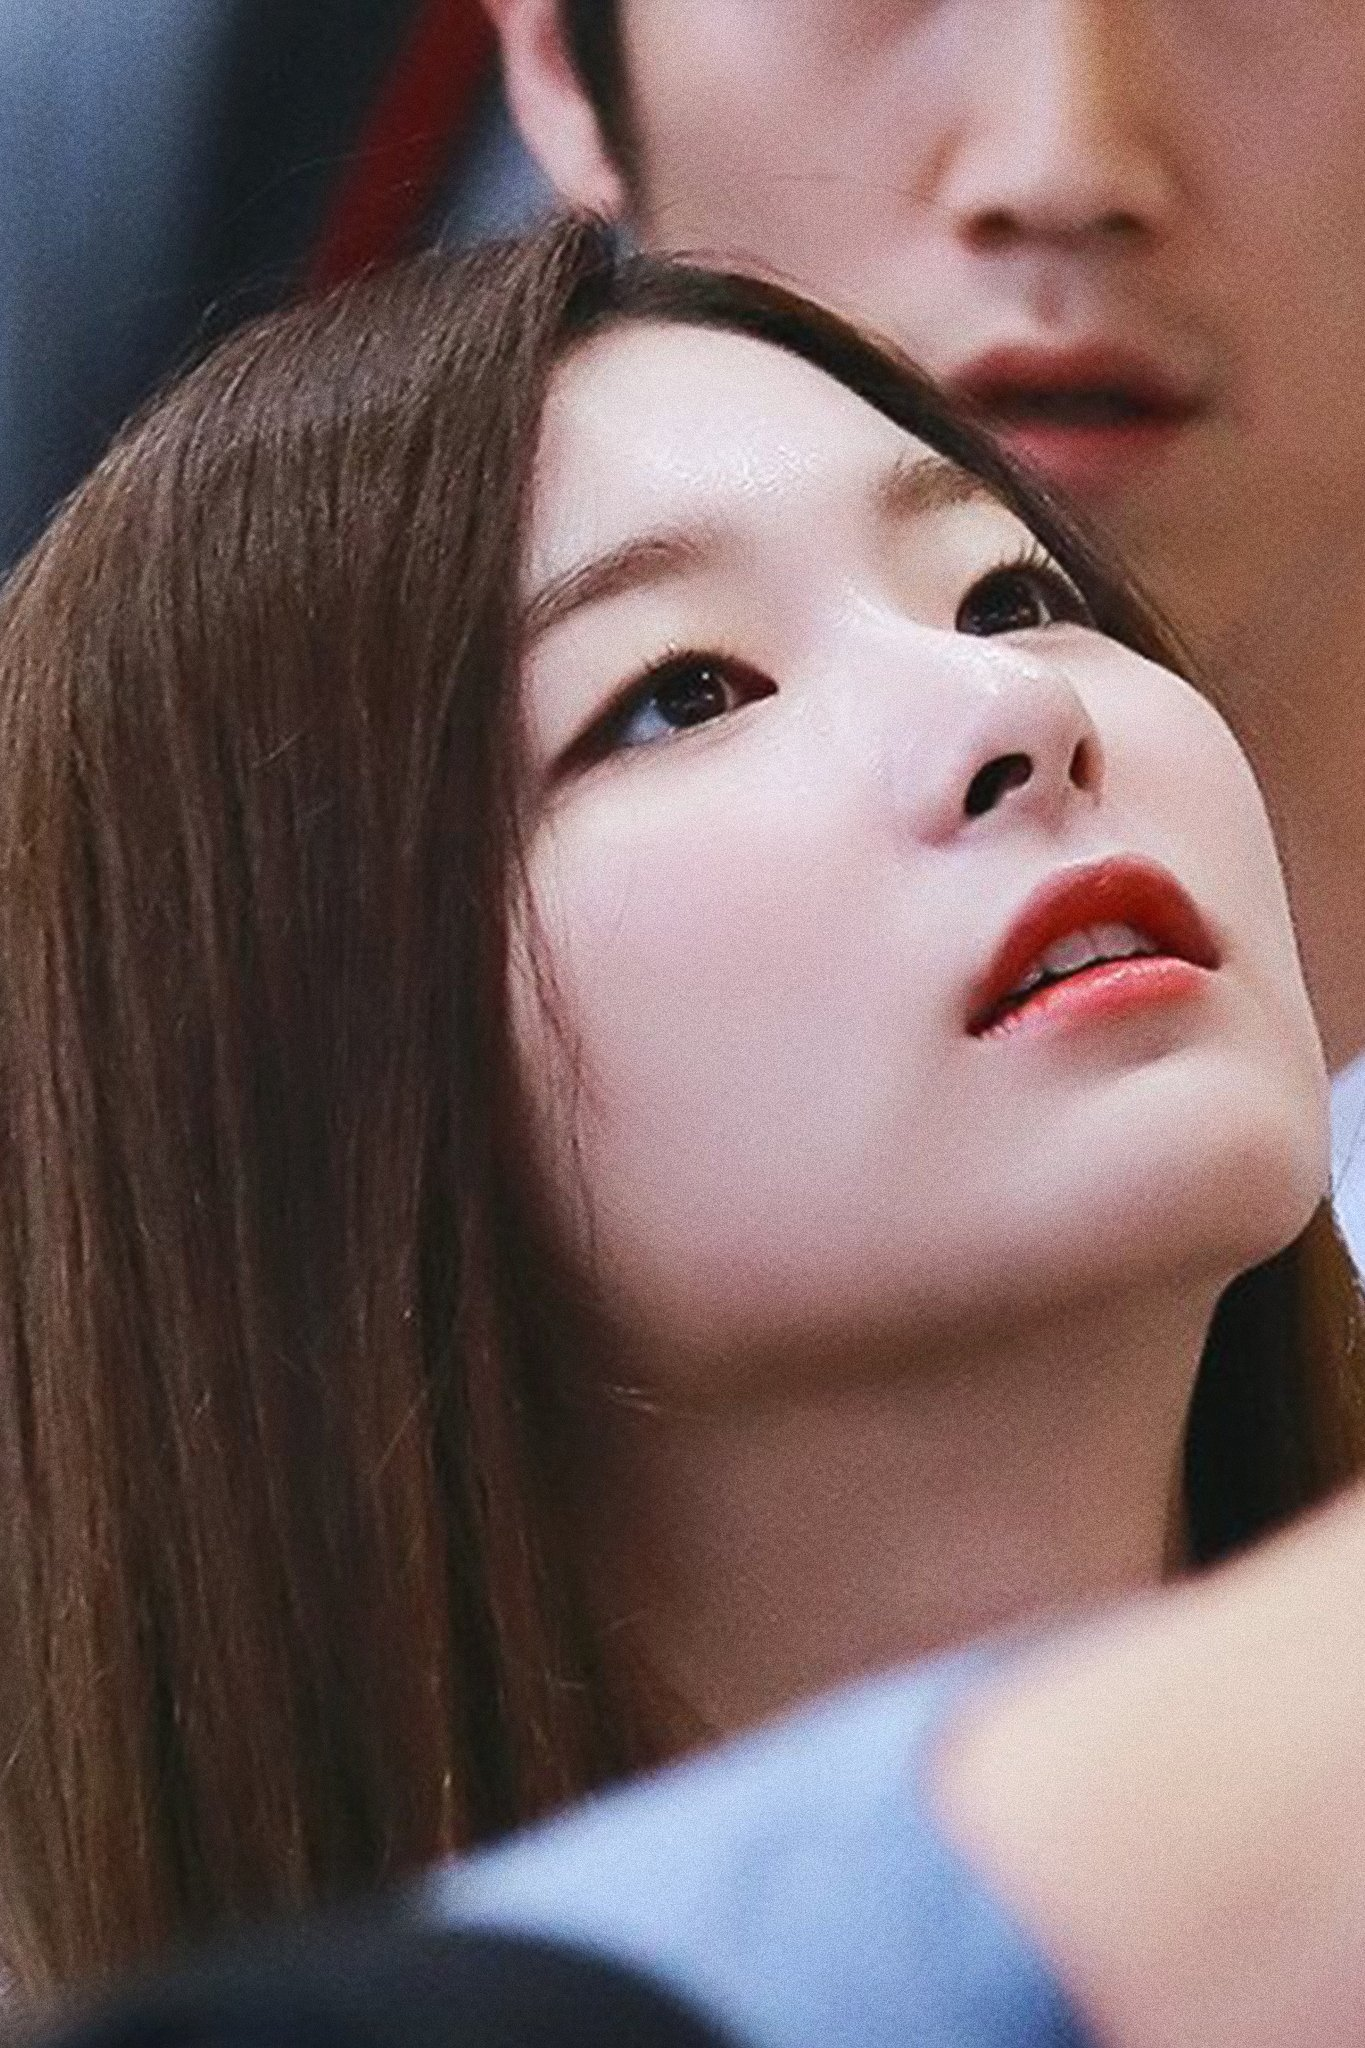 Seulgi-Heart-Shaped-Nostrils2